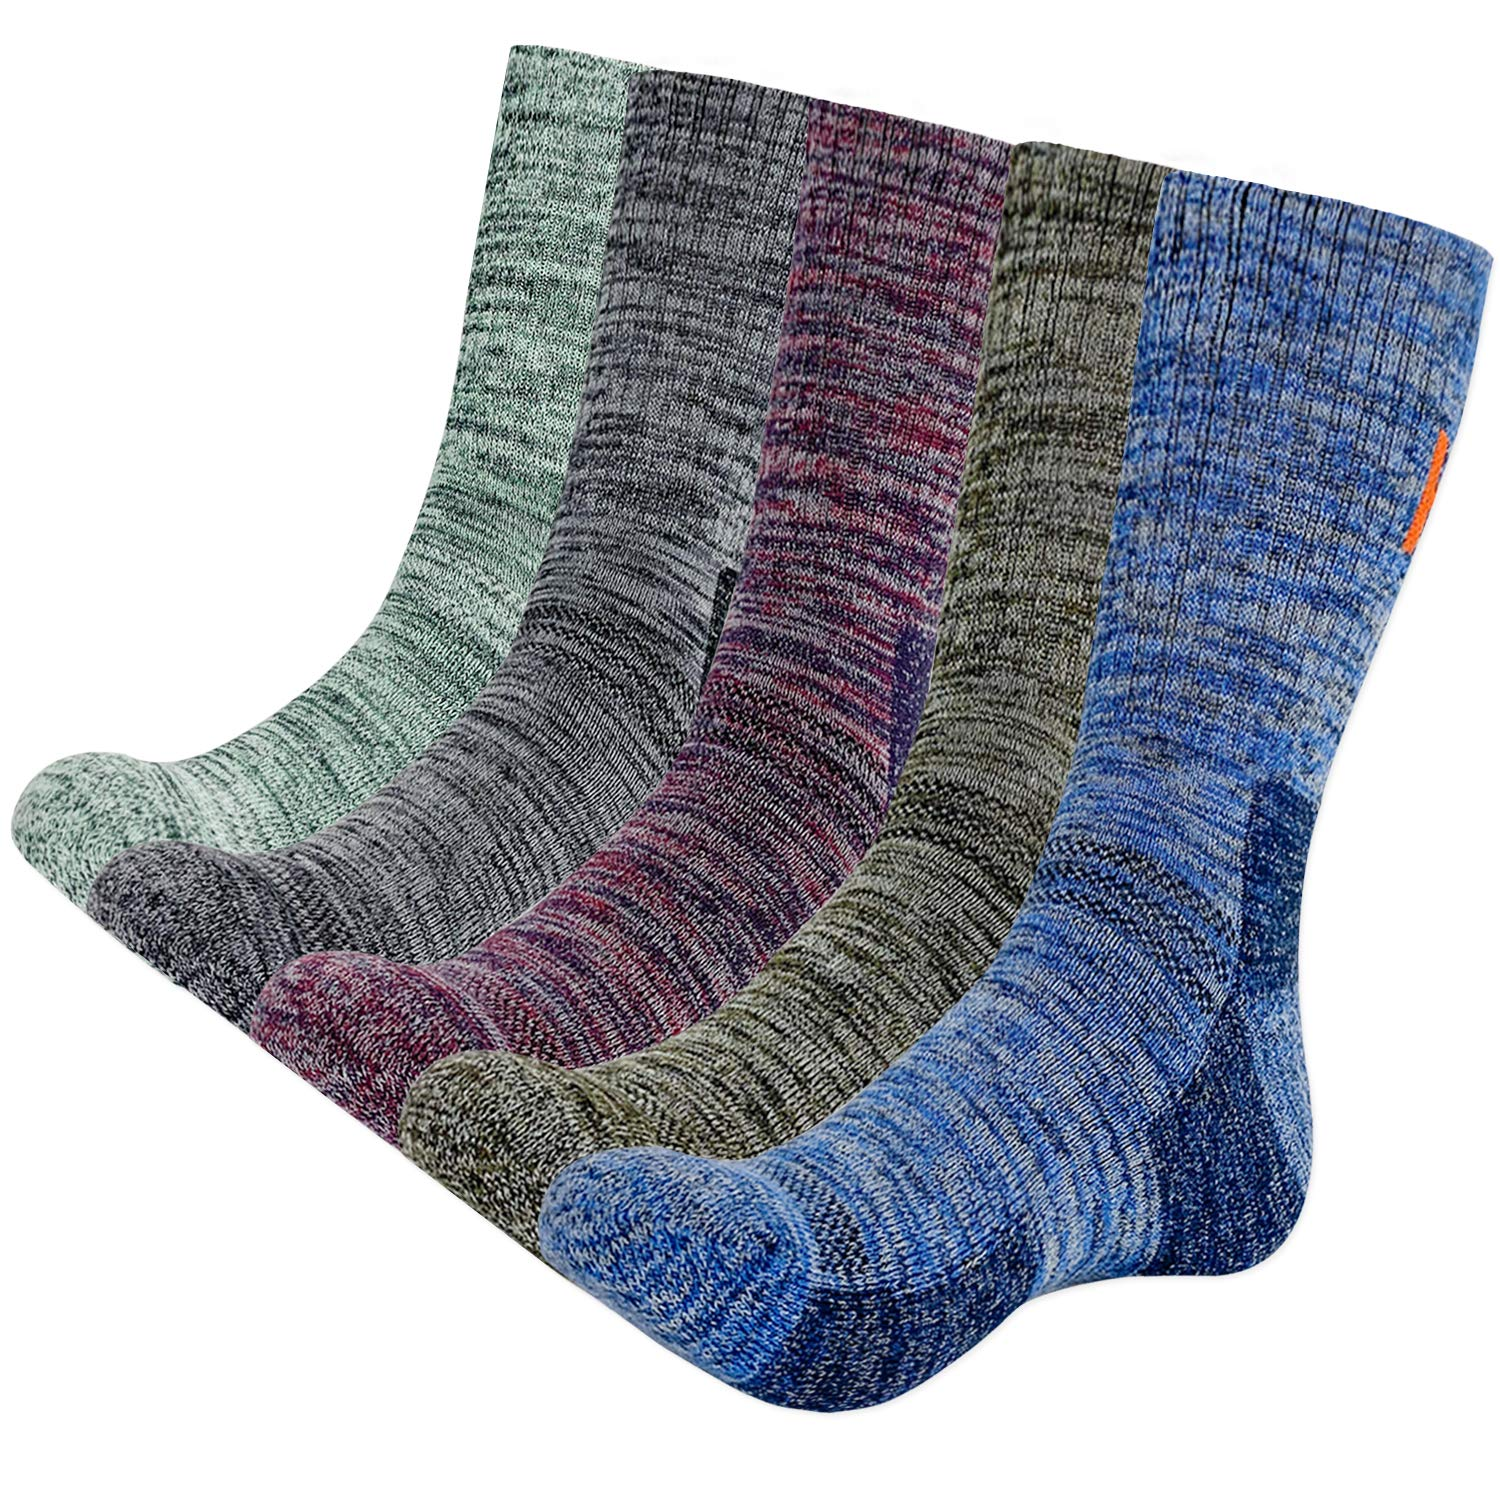 KONY 5 Pairs Men's Moisture Wicking Thick Cushioned Long Hiking Crew Socks, Multi Performance, All Season Gift (Multicolor long-1, Large(US shoe size 11-14) by KONY